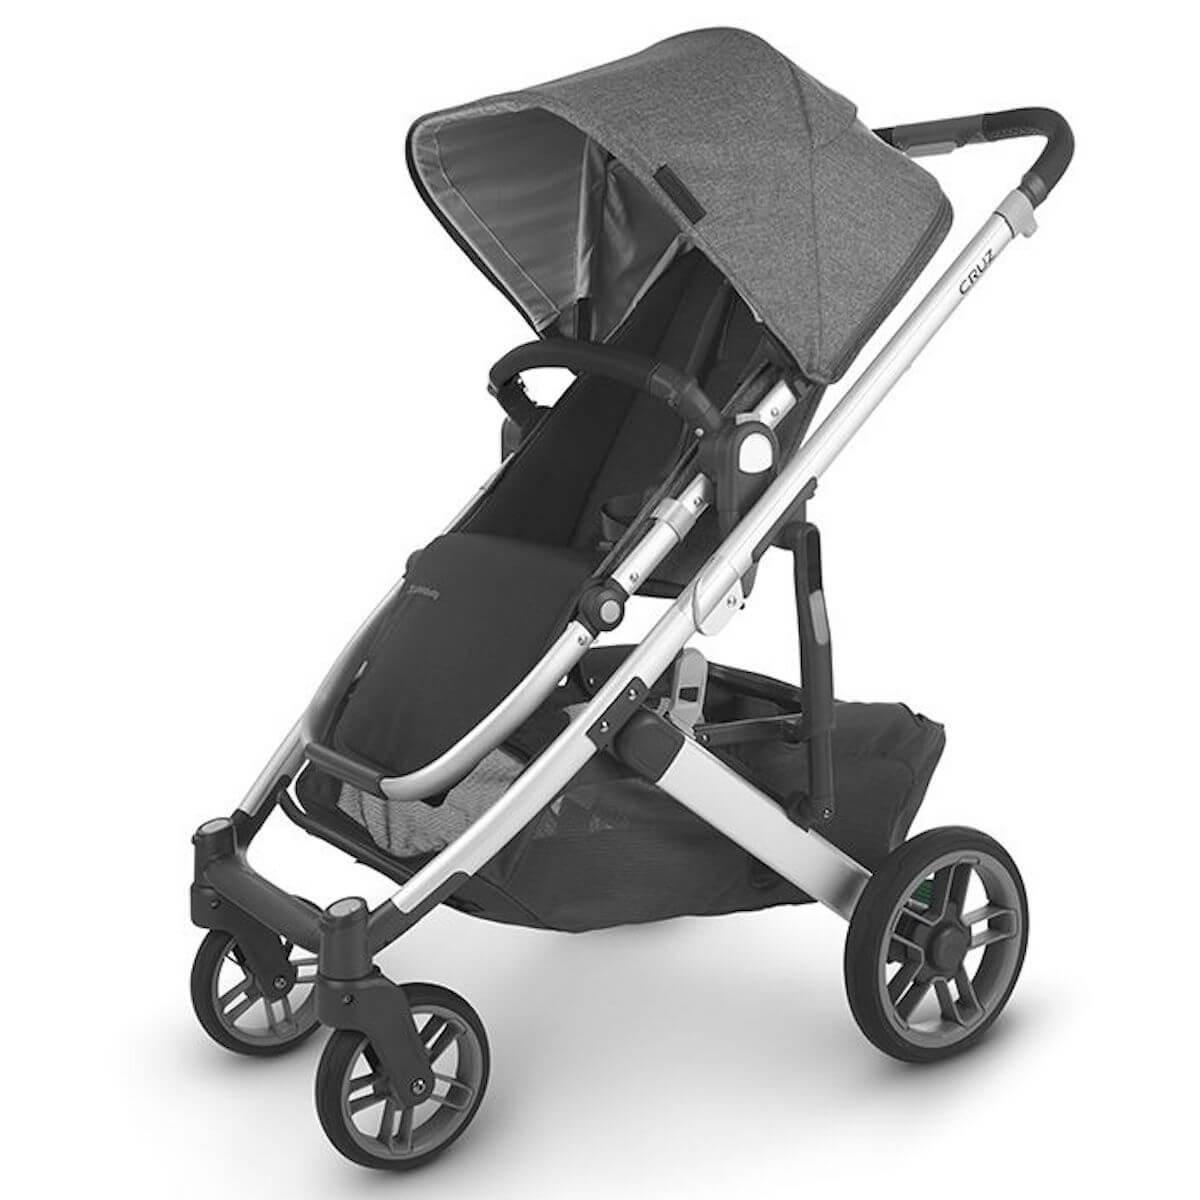 Poussette CRUZ V2 Uppababy Jordan antraciet melée-silver-saddle leather